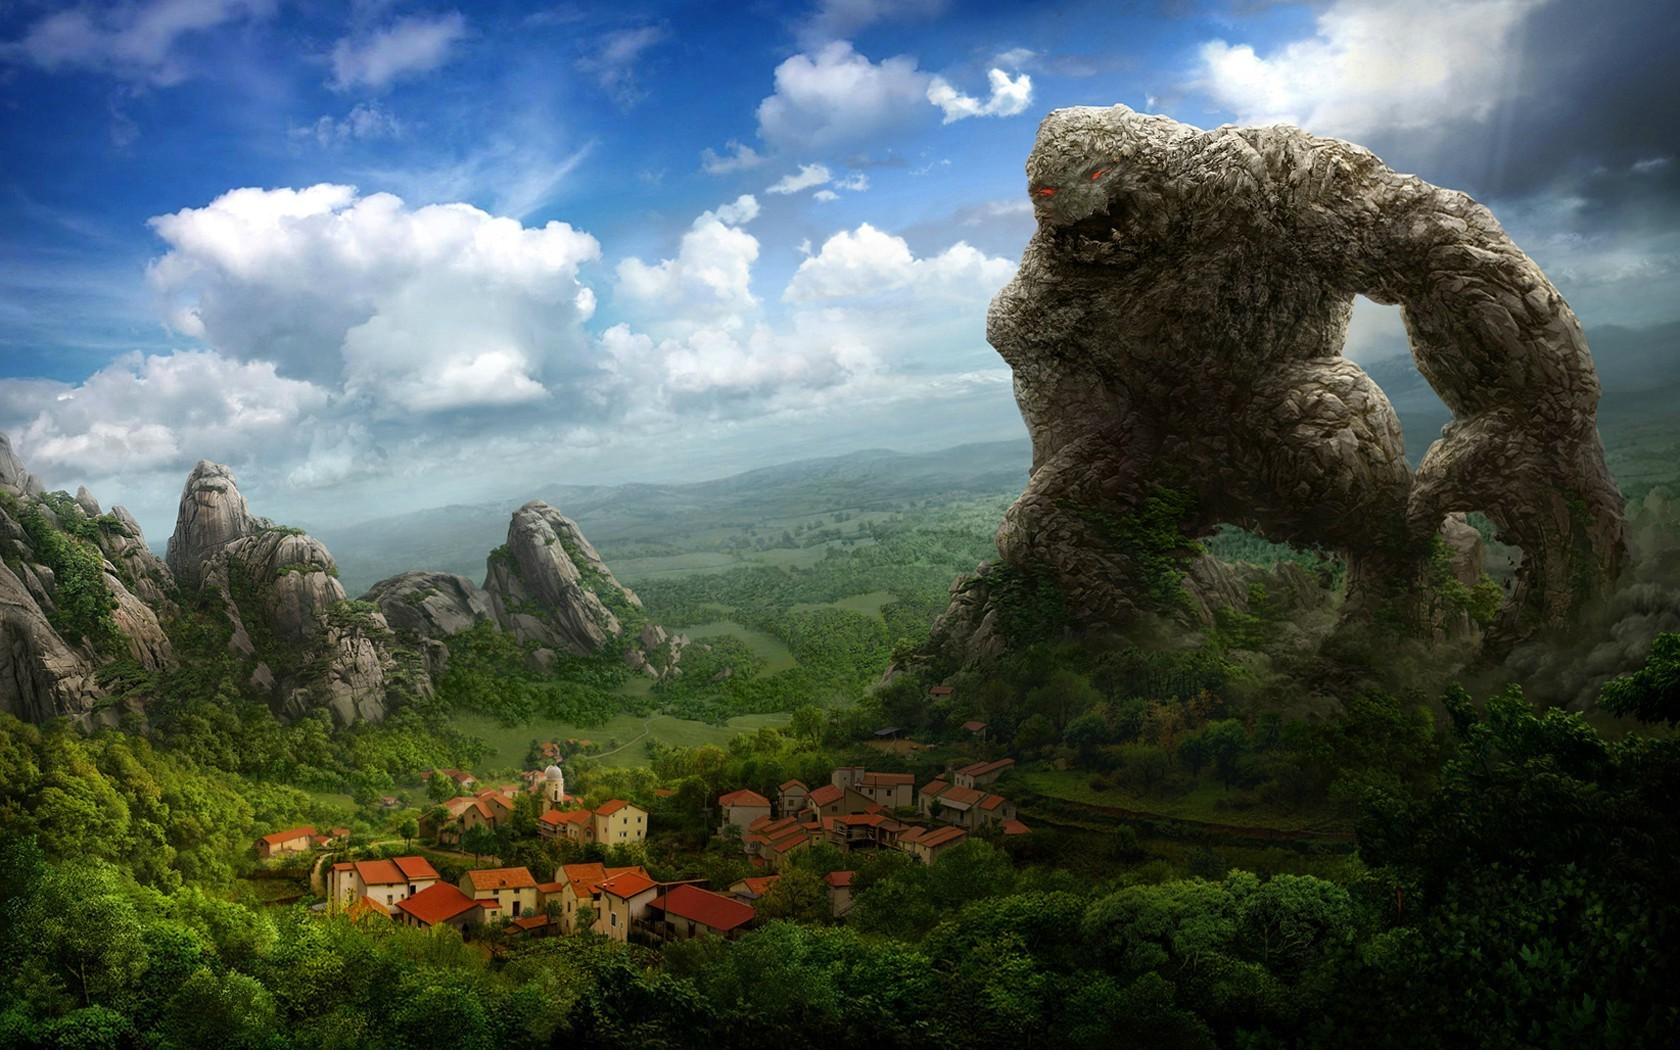 Scary Little Girl Wallpaper Fantasy Art Artwork Drawing Rock Creature Town House